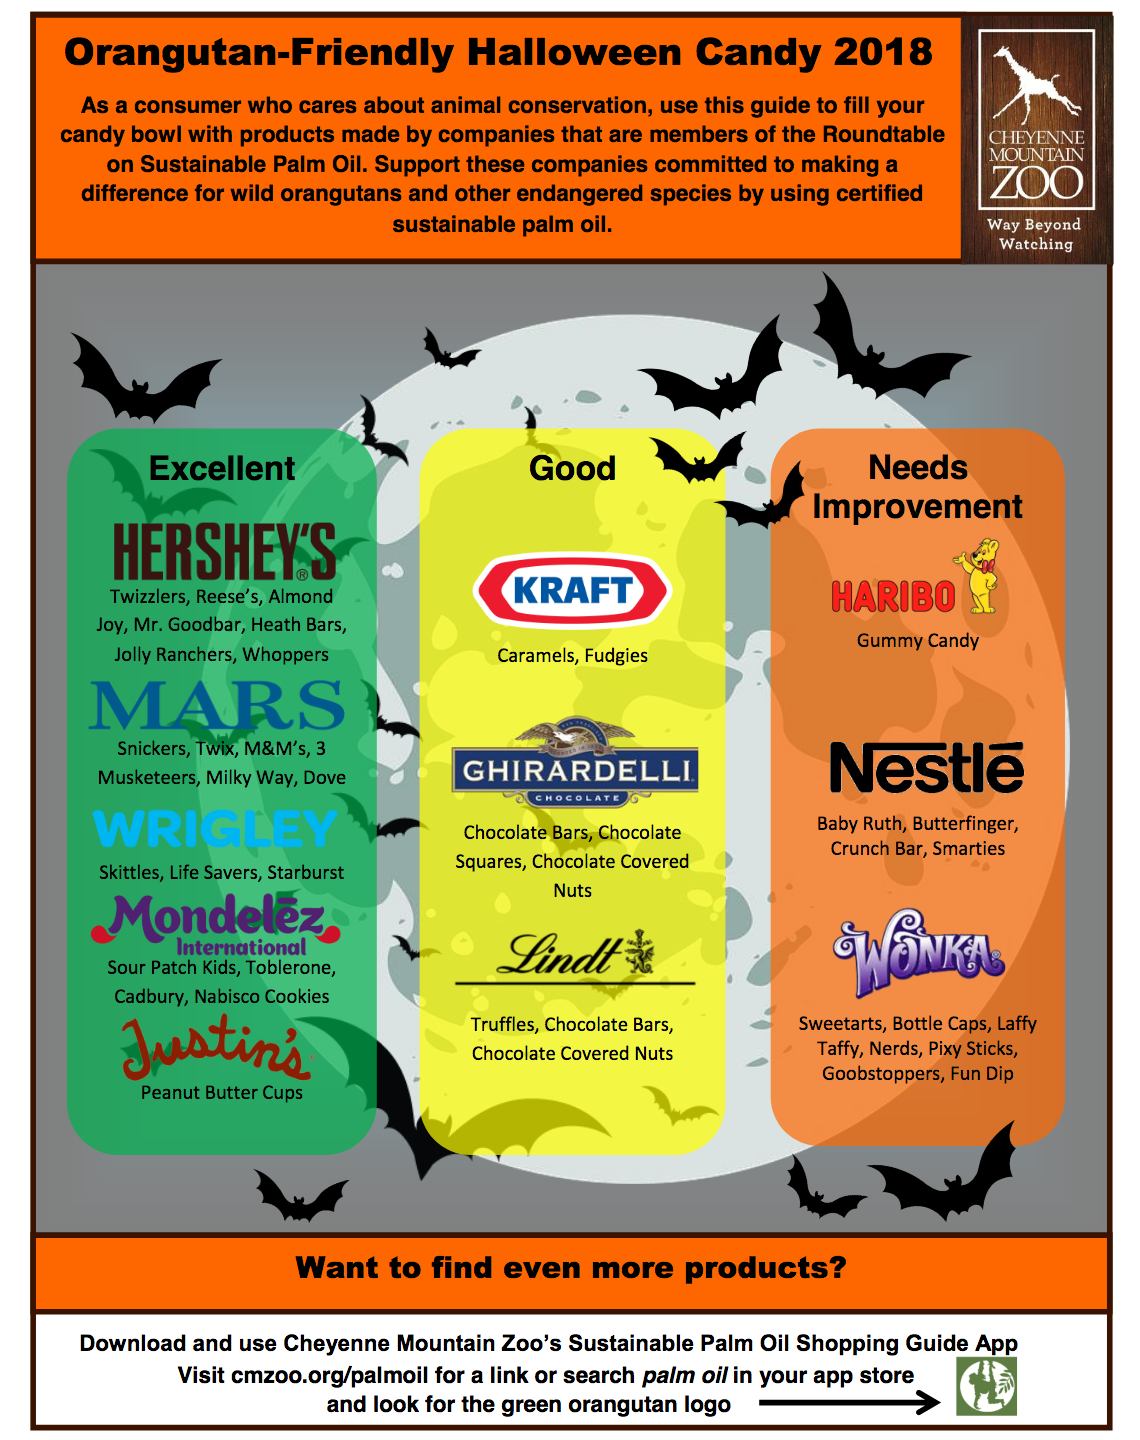 Sustainable Palm Oil friendly candy for Halloween